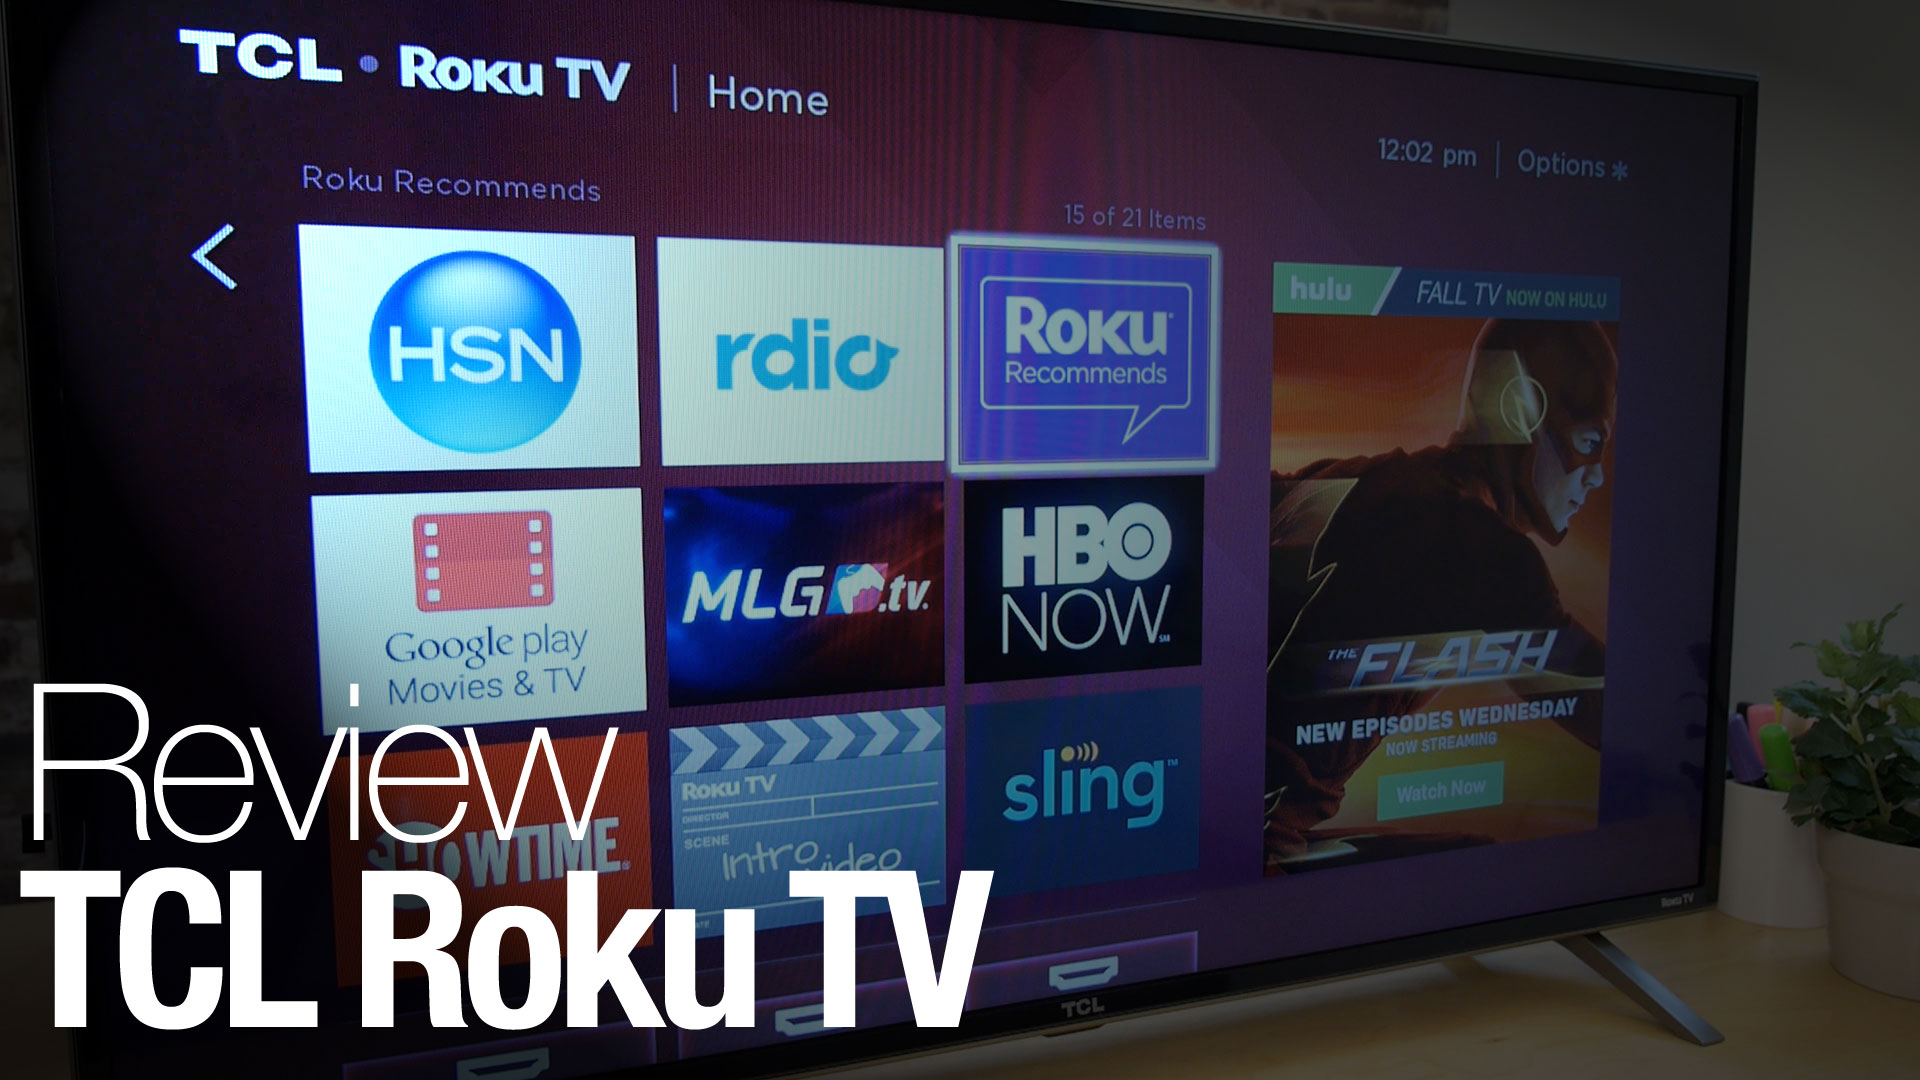 Why Your Roku Remote Has a Useless Rdio Button - Reviewed Televisions